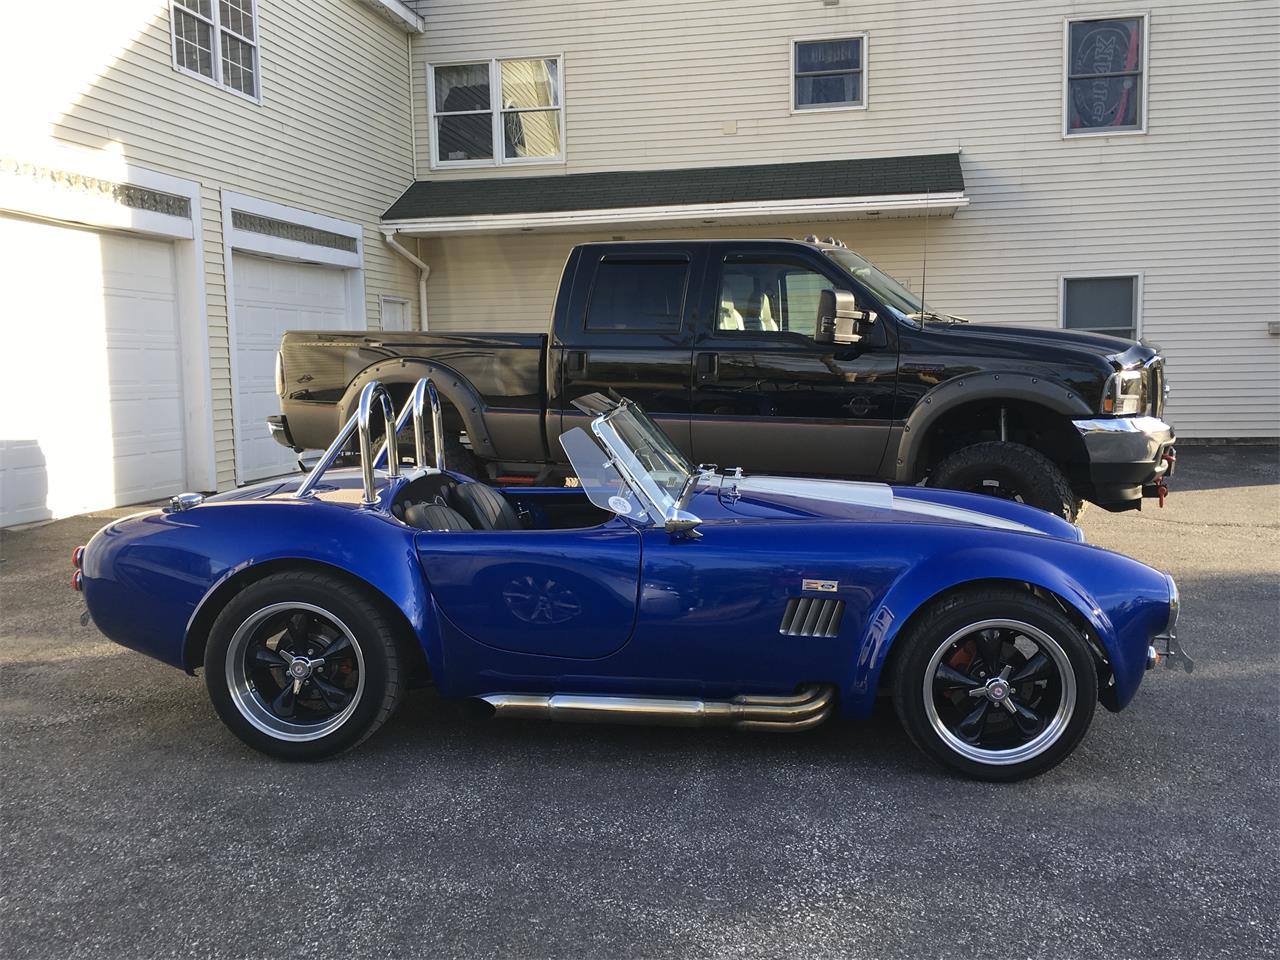 Large Picture of Classic '66 Cobra Replica Offered by a Private Seller - Q2QB